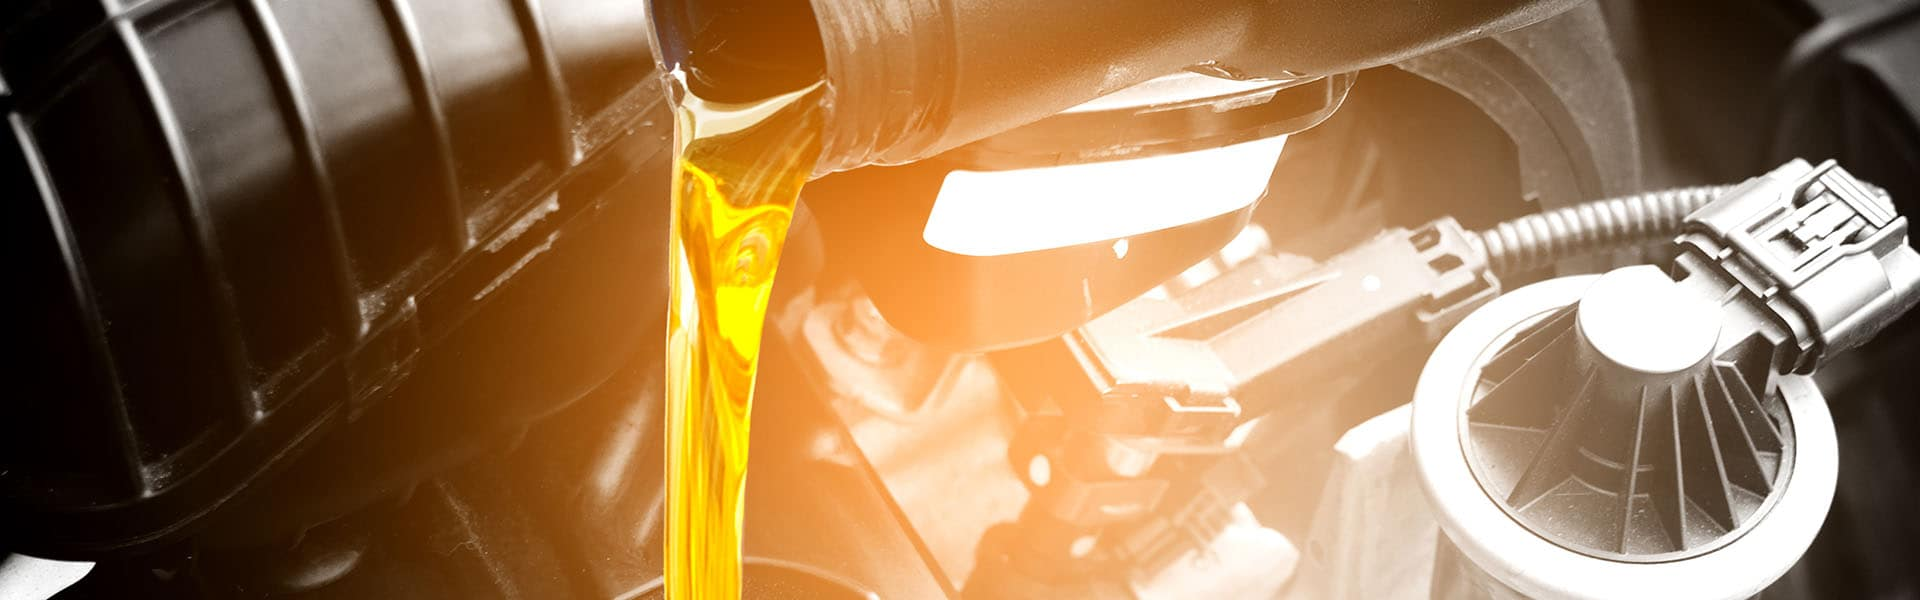 Refueling and pouring oil quality into the engine motor car Tran